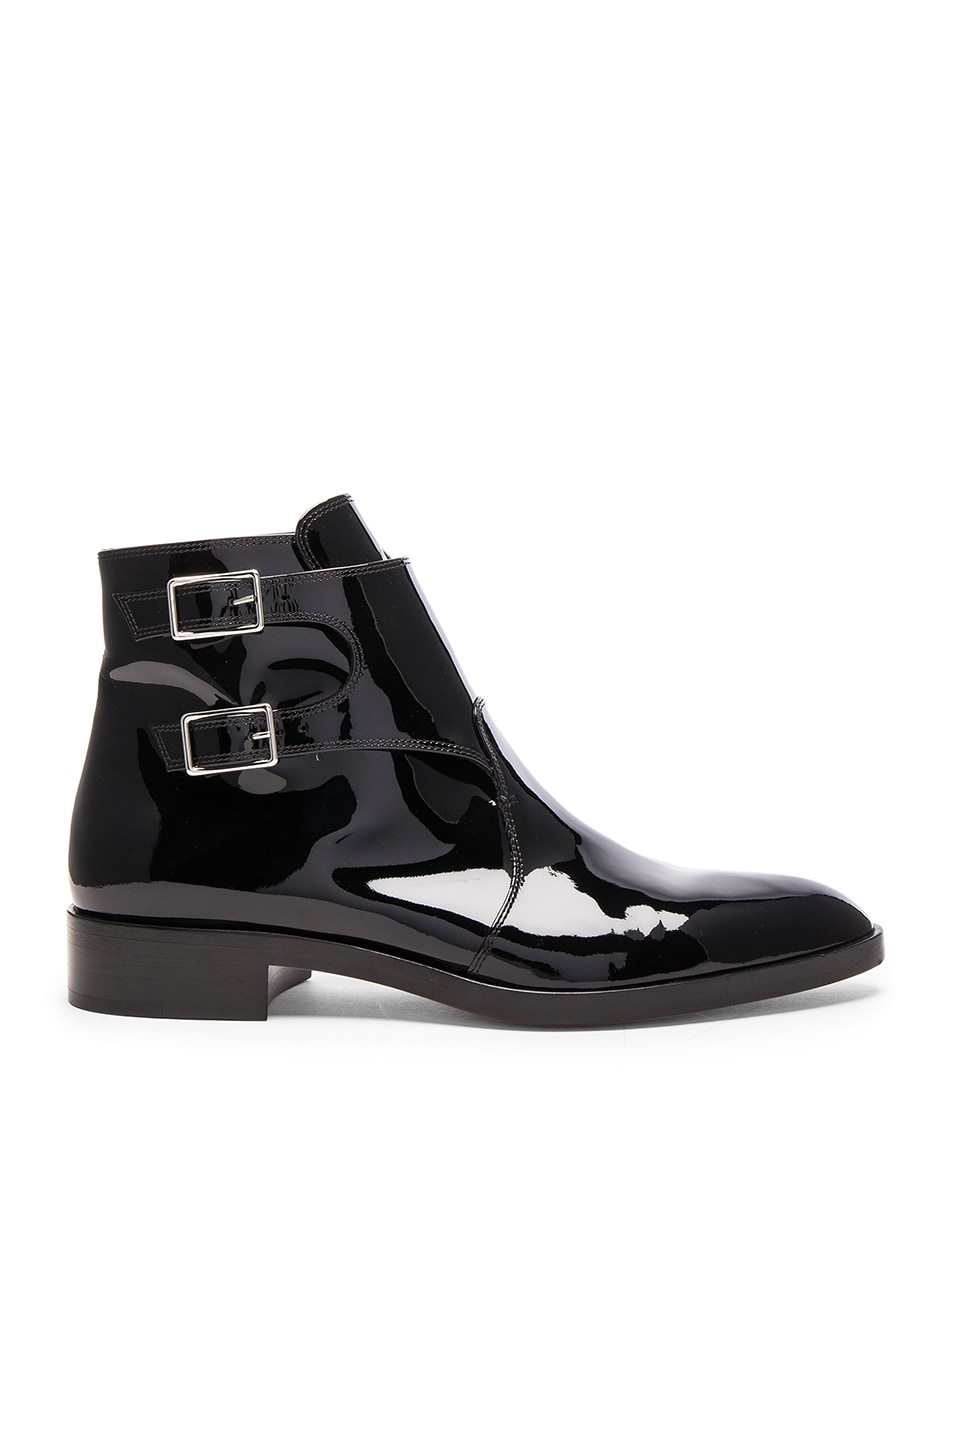 Image 1 of Gianvito Rossi Patent Leather Boots in Black